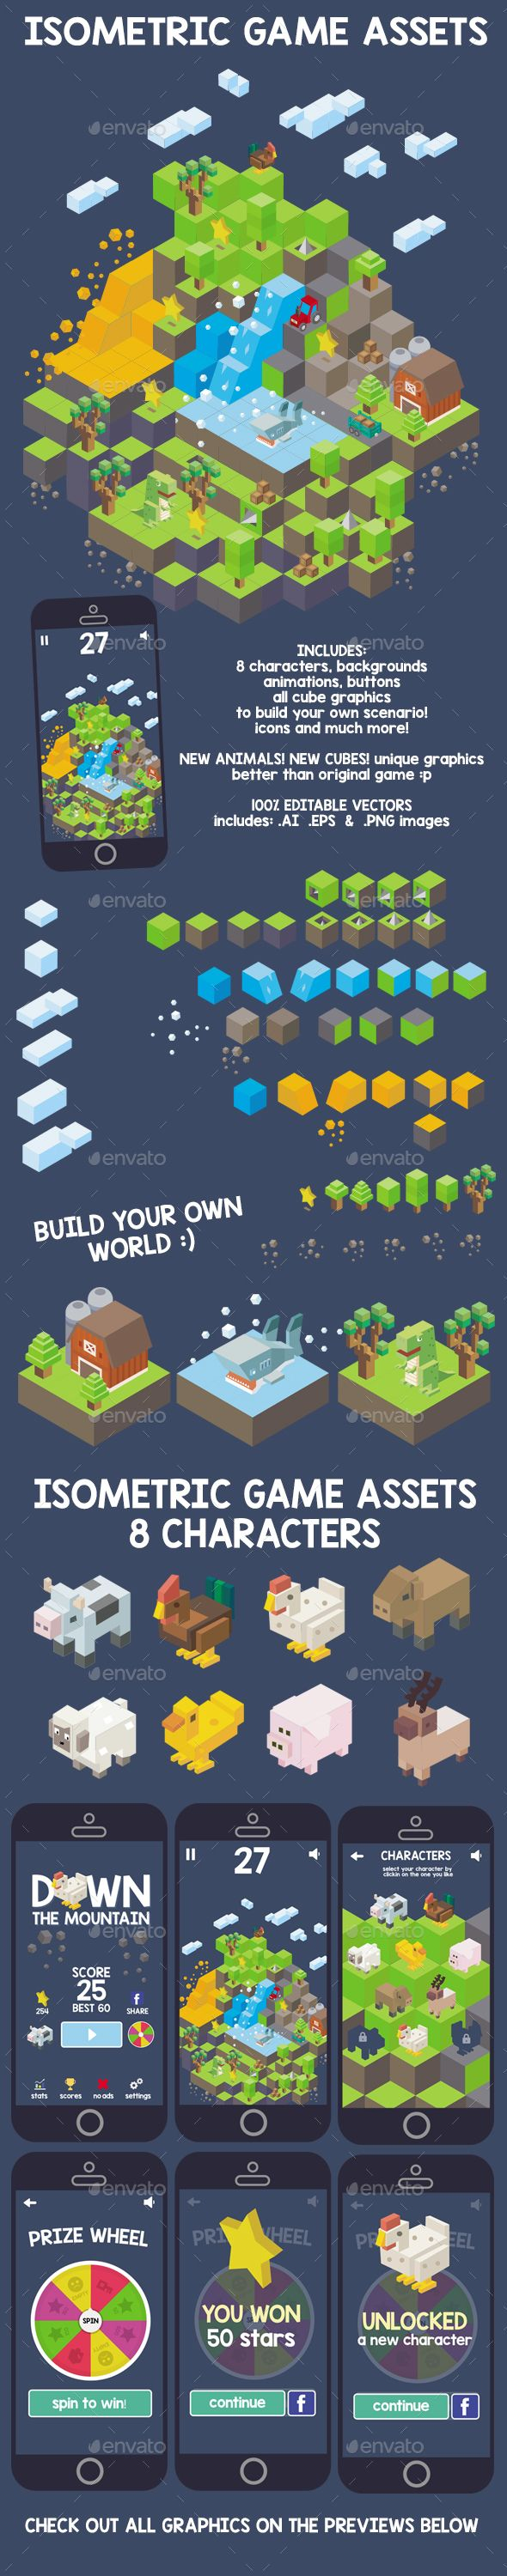 Isometric Game Assets - Down The Mountain - Game #Kits #Game #Assets | Download http://graphicriver.net/item/isometric-game-assets-down-the-mountain/14350697?ref=sinzo